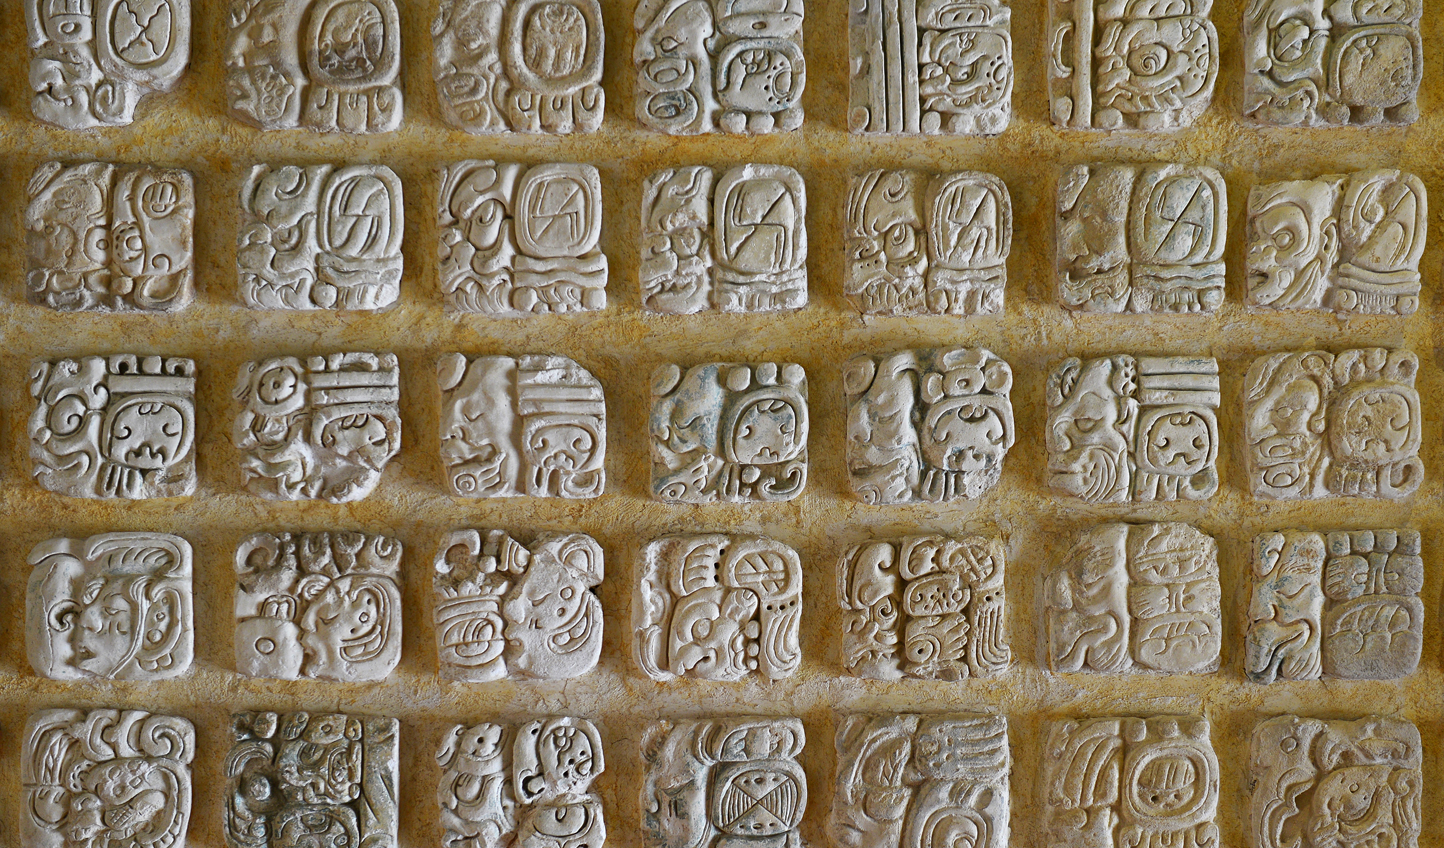 Learn the tales of ancient Mayan civilization